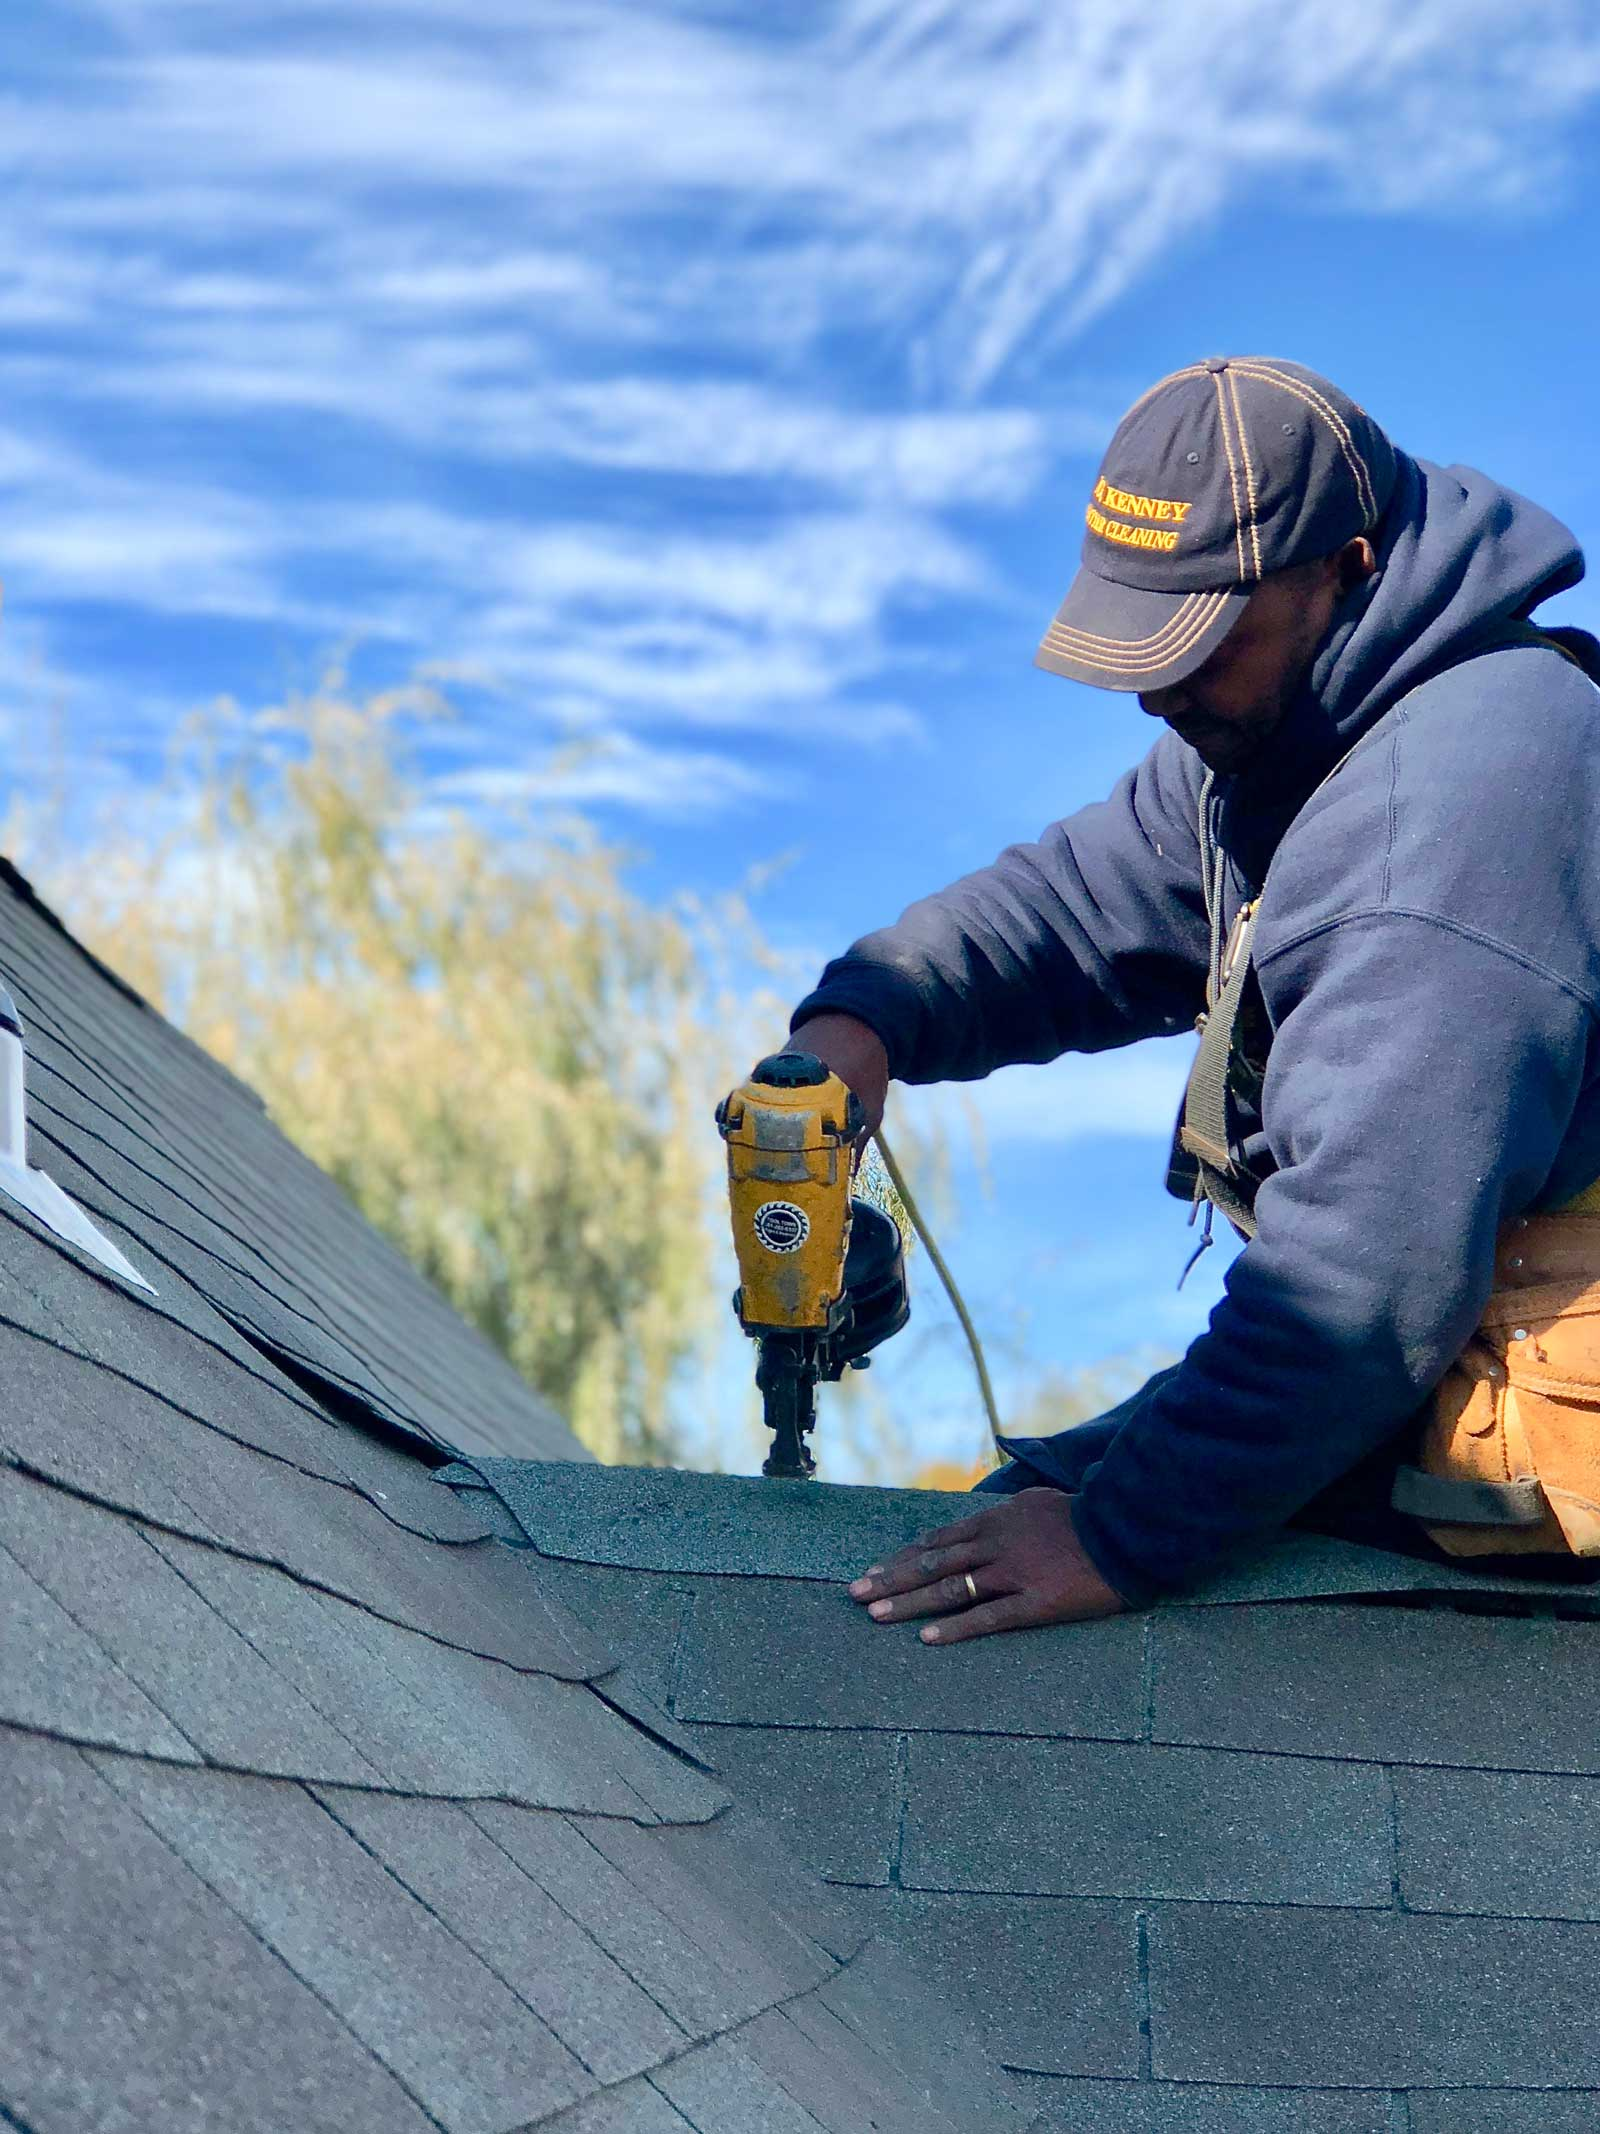 Gutter Cleaning Amp Roofing In Lodi Nj Joe Kenney Llc